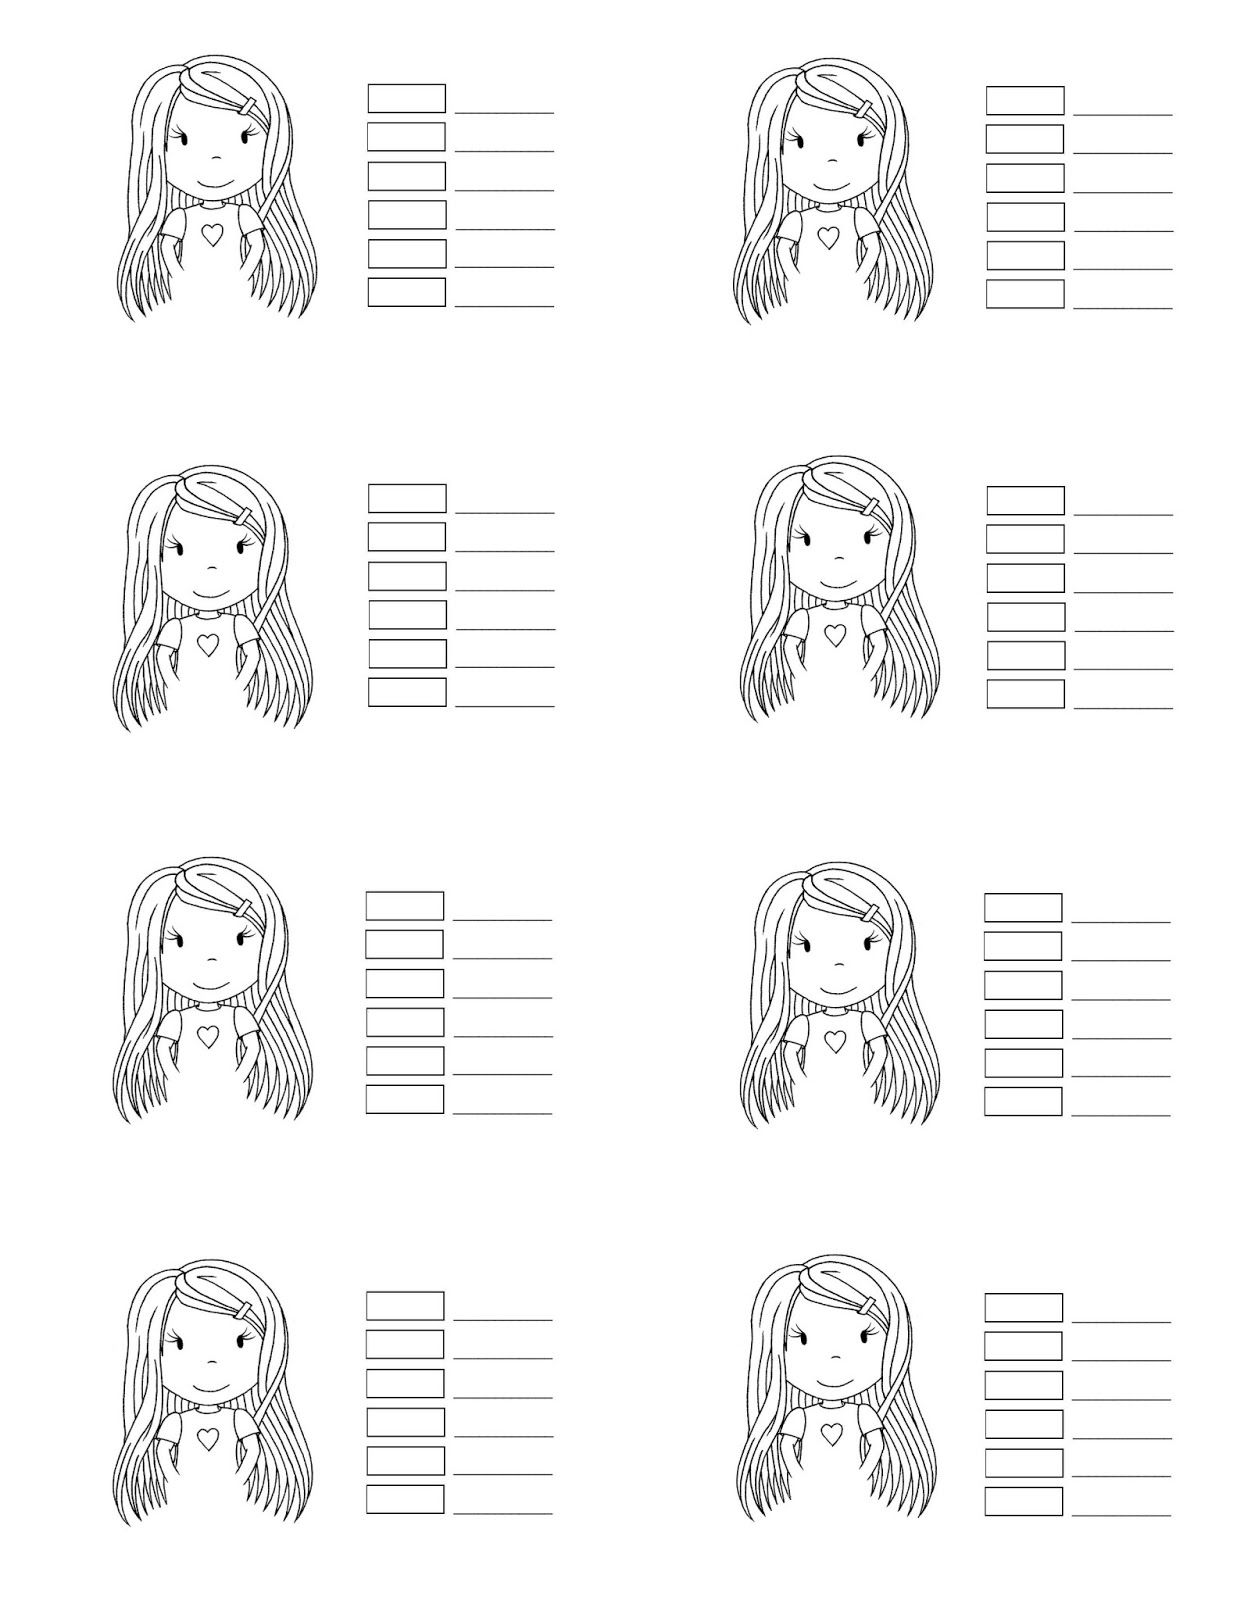 Practice Sheet For Coloring Hair And Face Of Girl